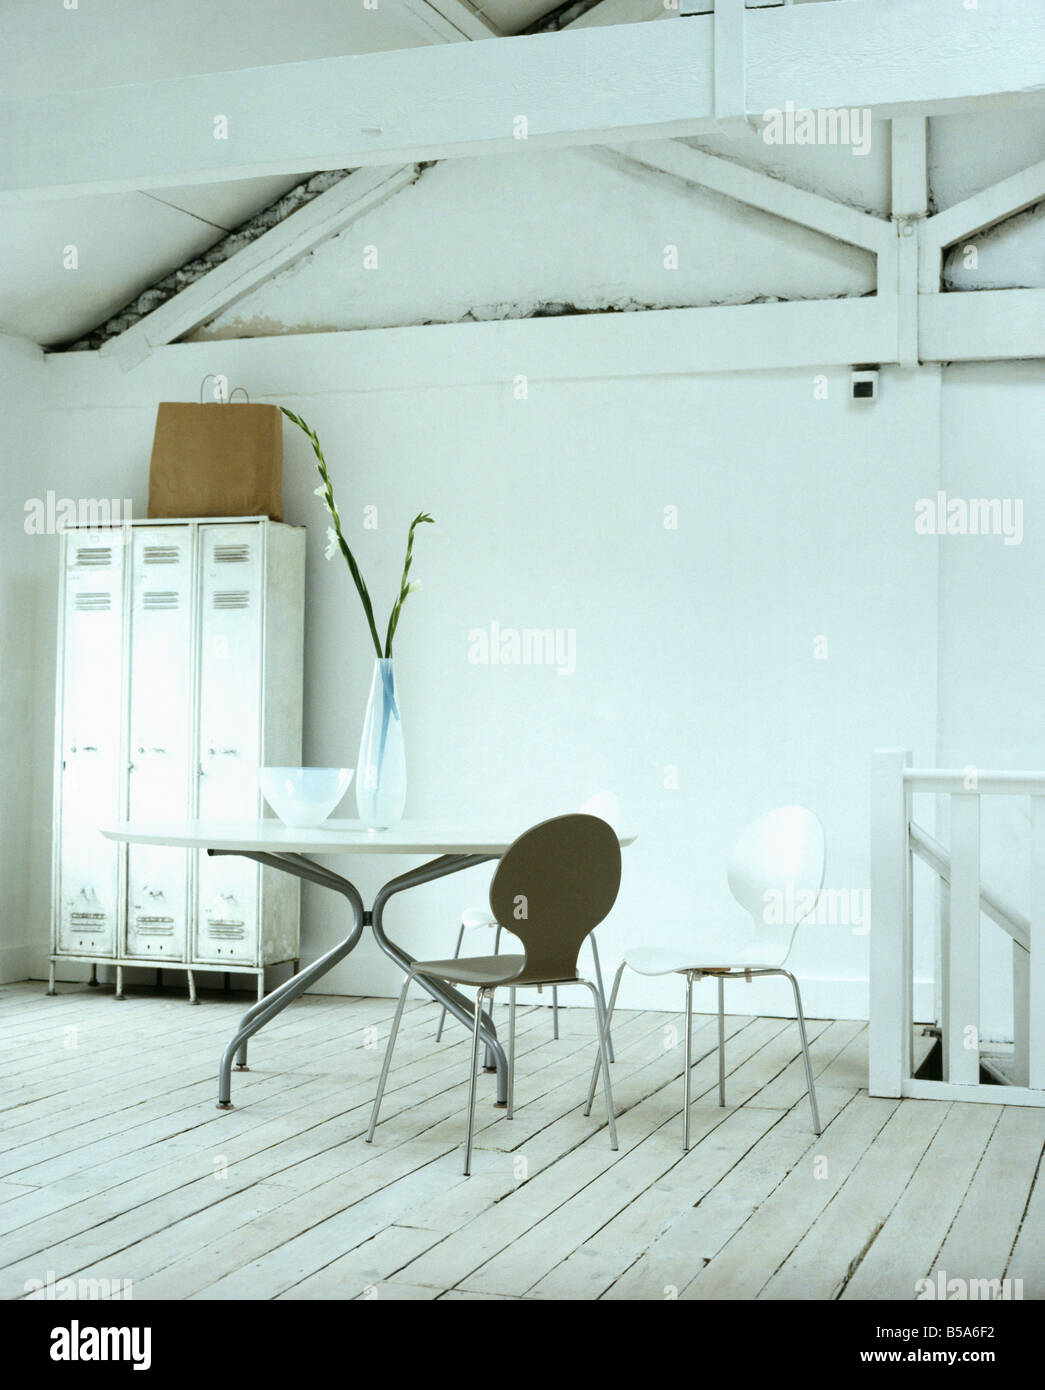 Ant Chair By Arne Jacobsen Stockfotos & Ant Chair By Arne Jacobsen ...